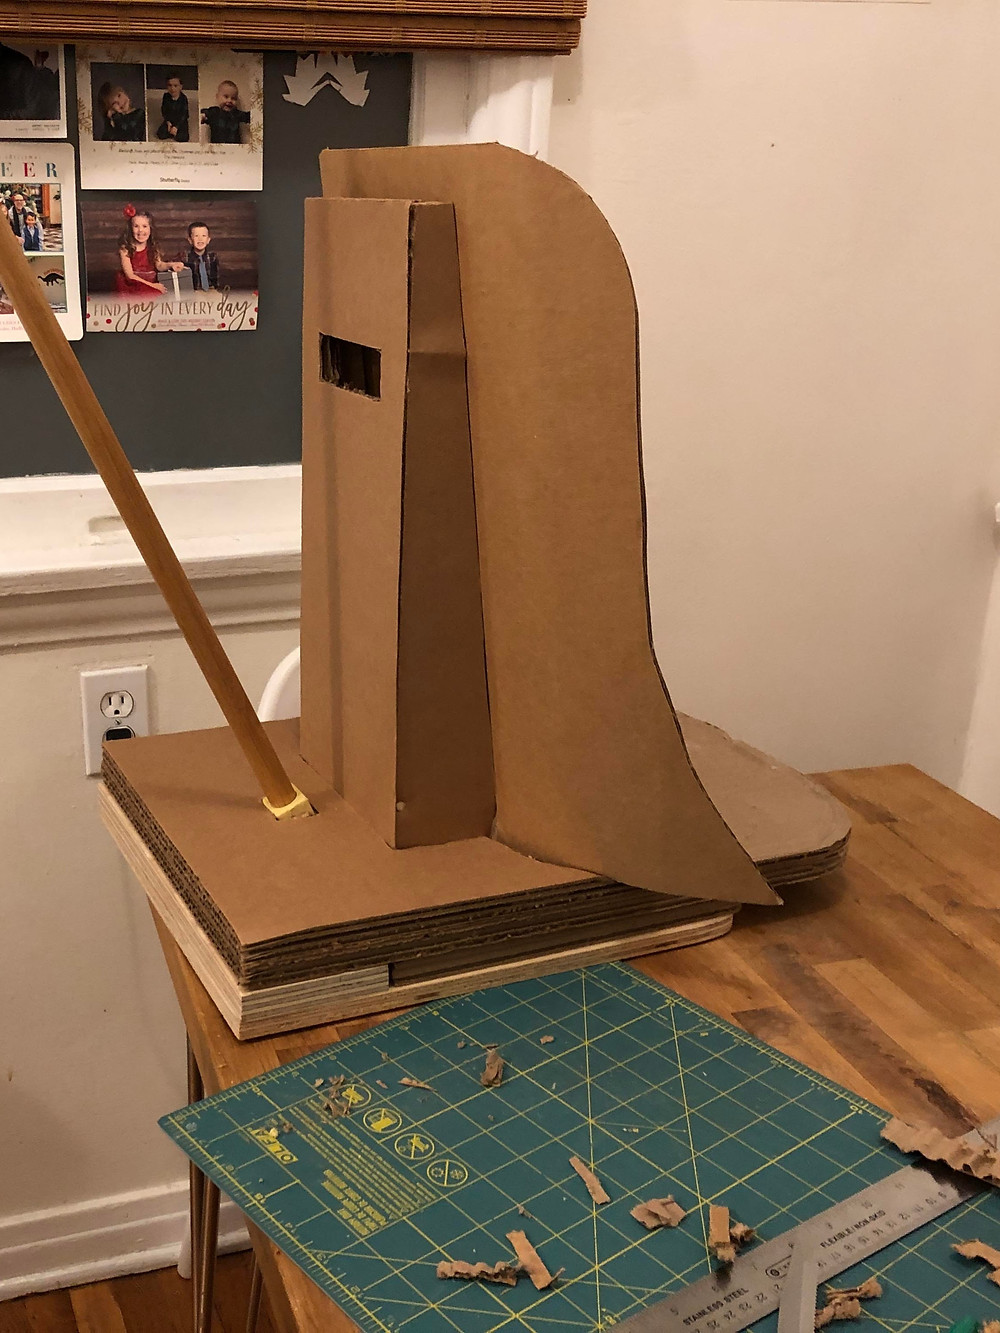 A work in progress, this cardboard seat has a rounded high back with slightly curved side pieces.  A pole is inserted into the platform behind the seat to be used to push the chair once wheels are added. A green cutting mat is on the workbench next to the seat.